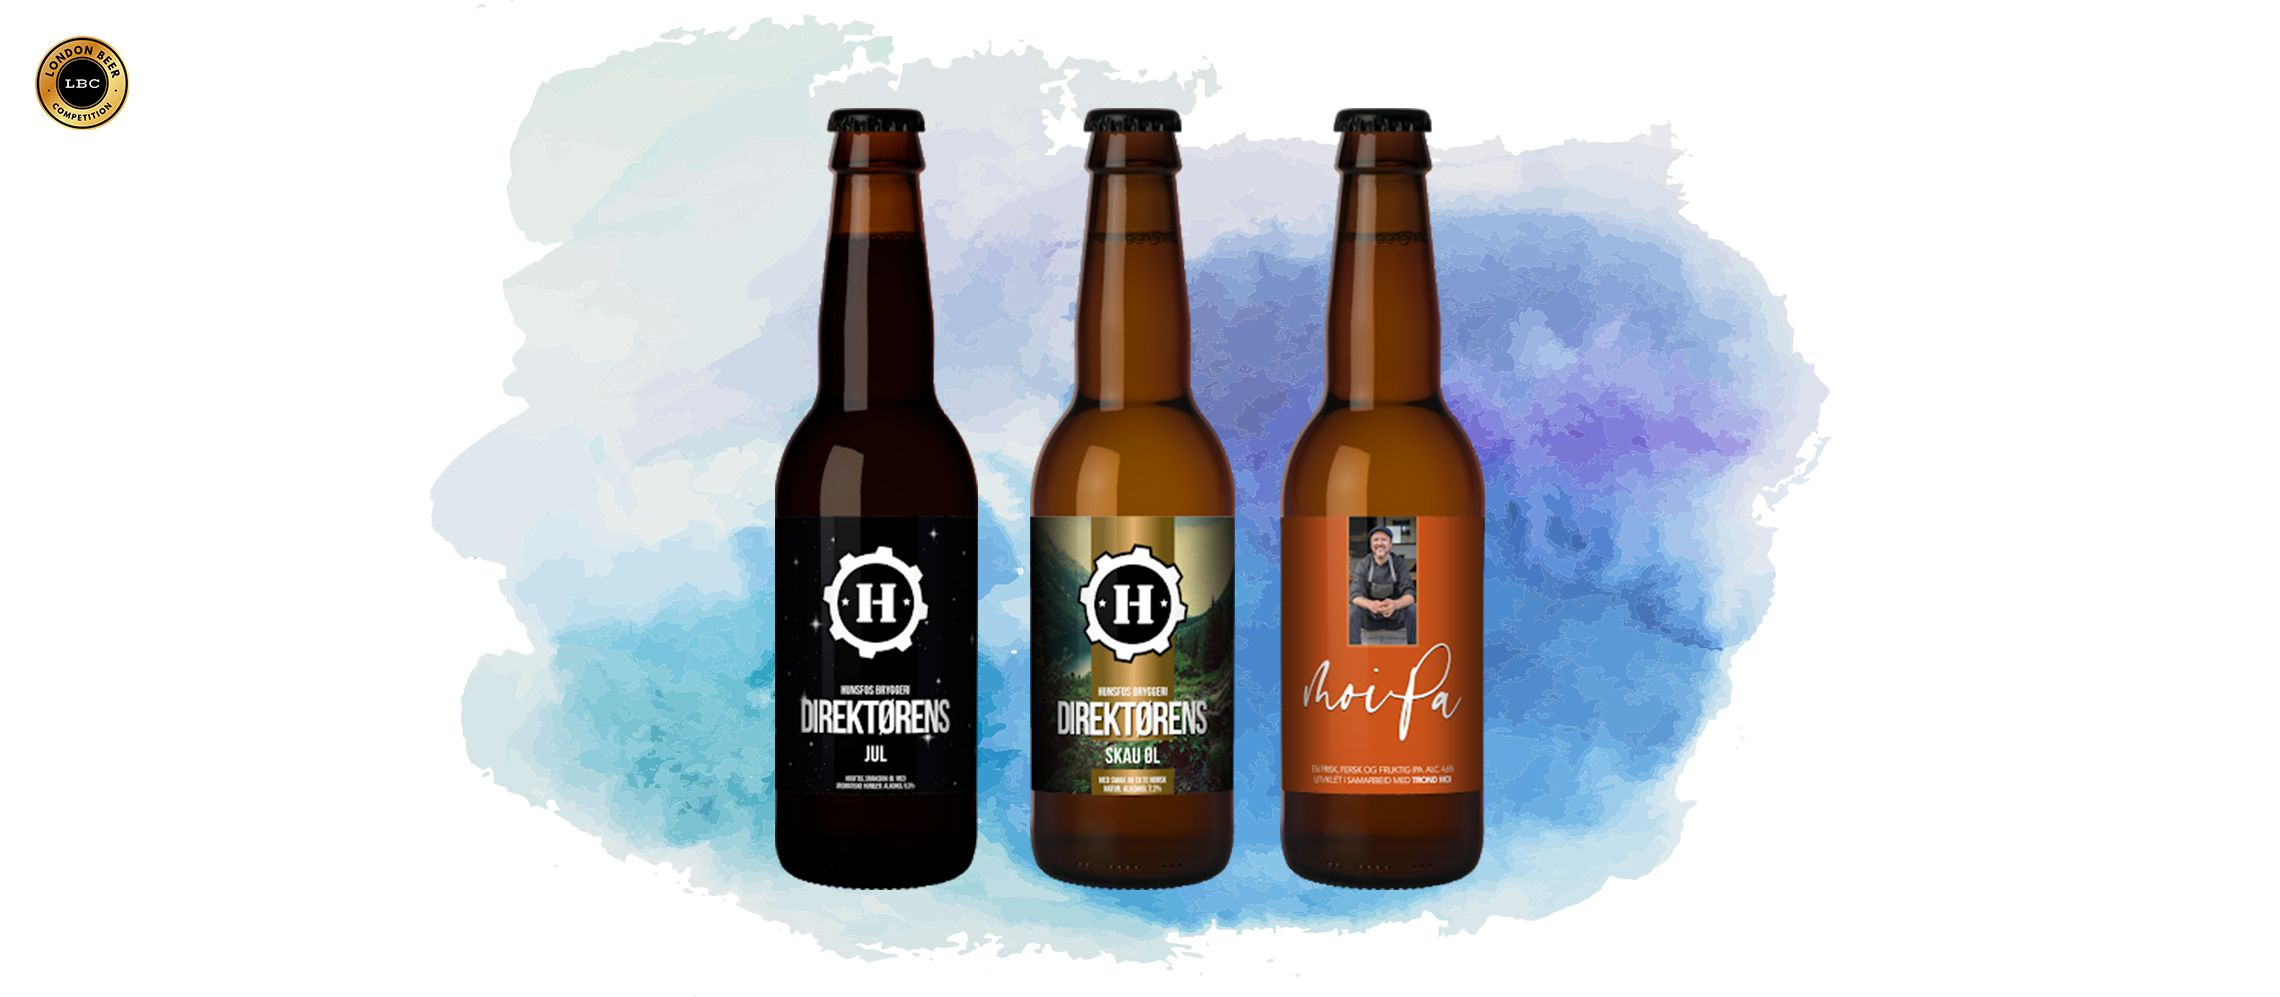 Photo for: Top Beers From Norway To Try